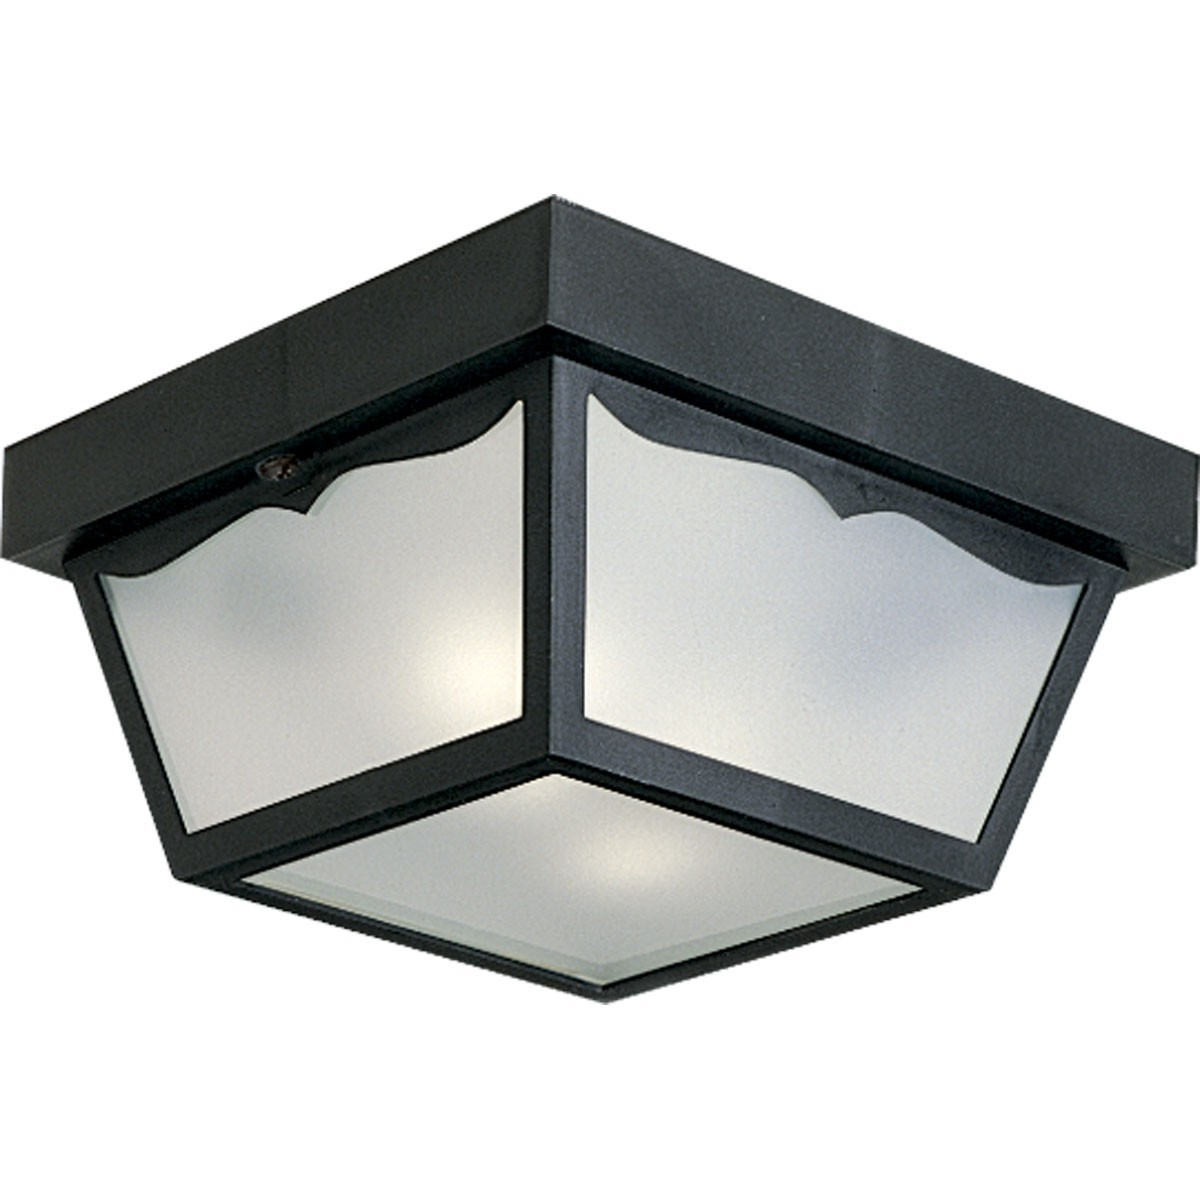 60W Outdoor Flush Mount Non Metallic Ceiling Light – Progress Inside 2018 Unique Outdoor Ceiling Lights (Gallery 9 of 20)